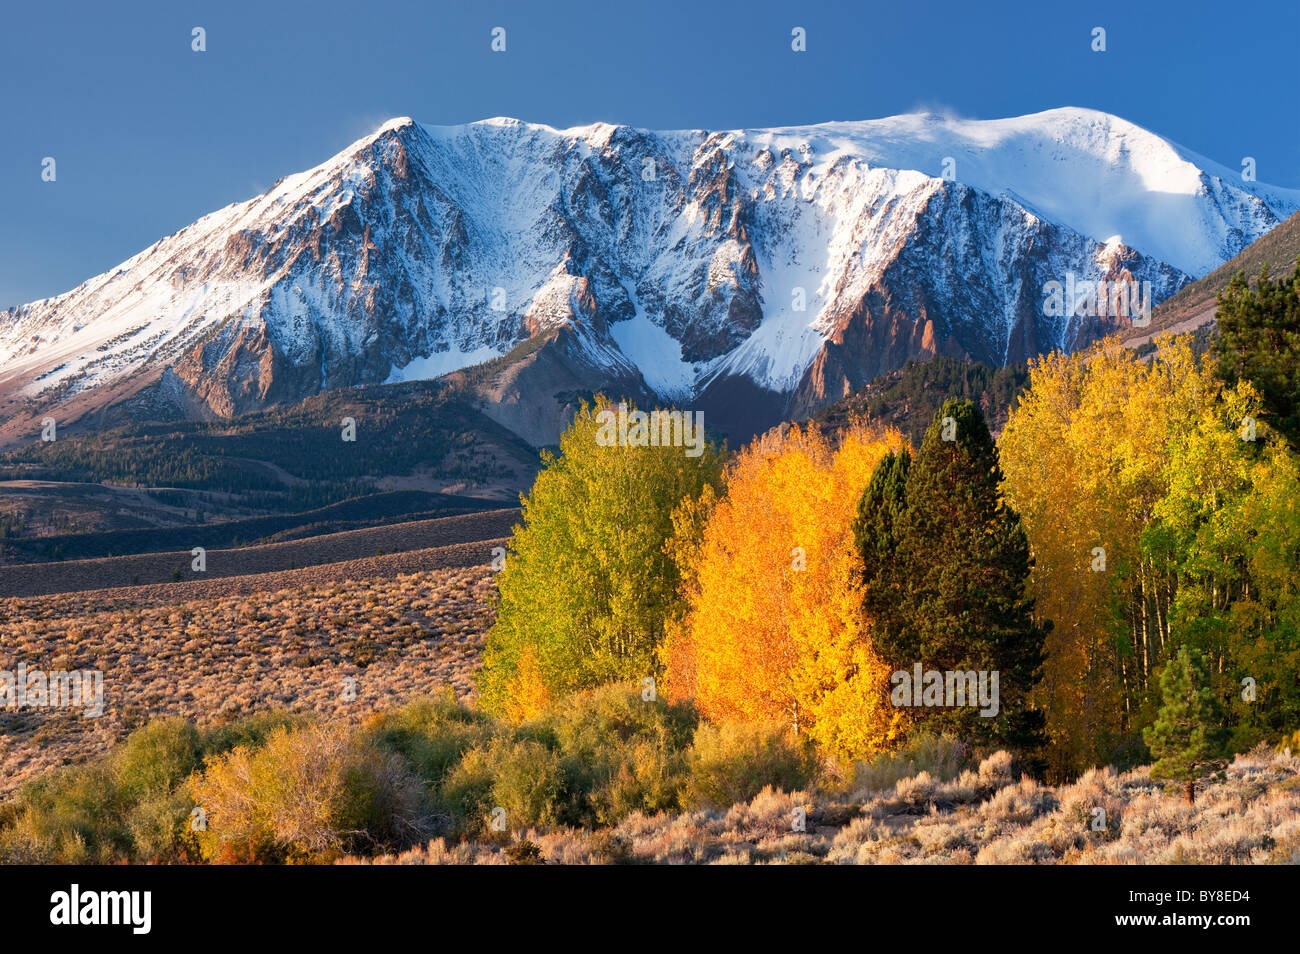 Aspen trees with fall color. Eastern Sierra Nevada Mountains. California - Stock Image